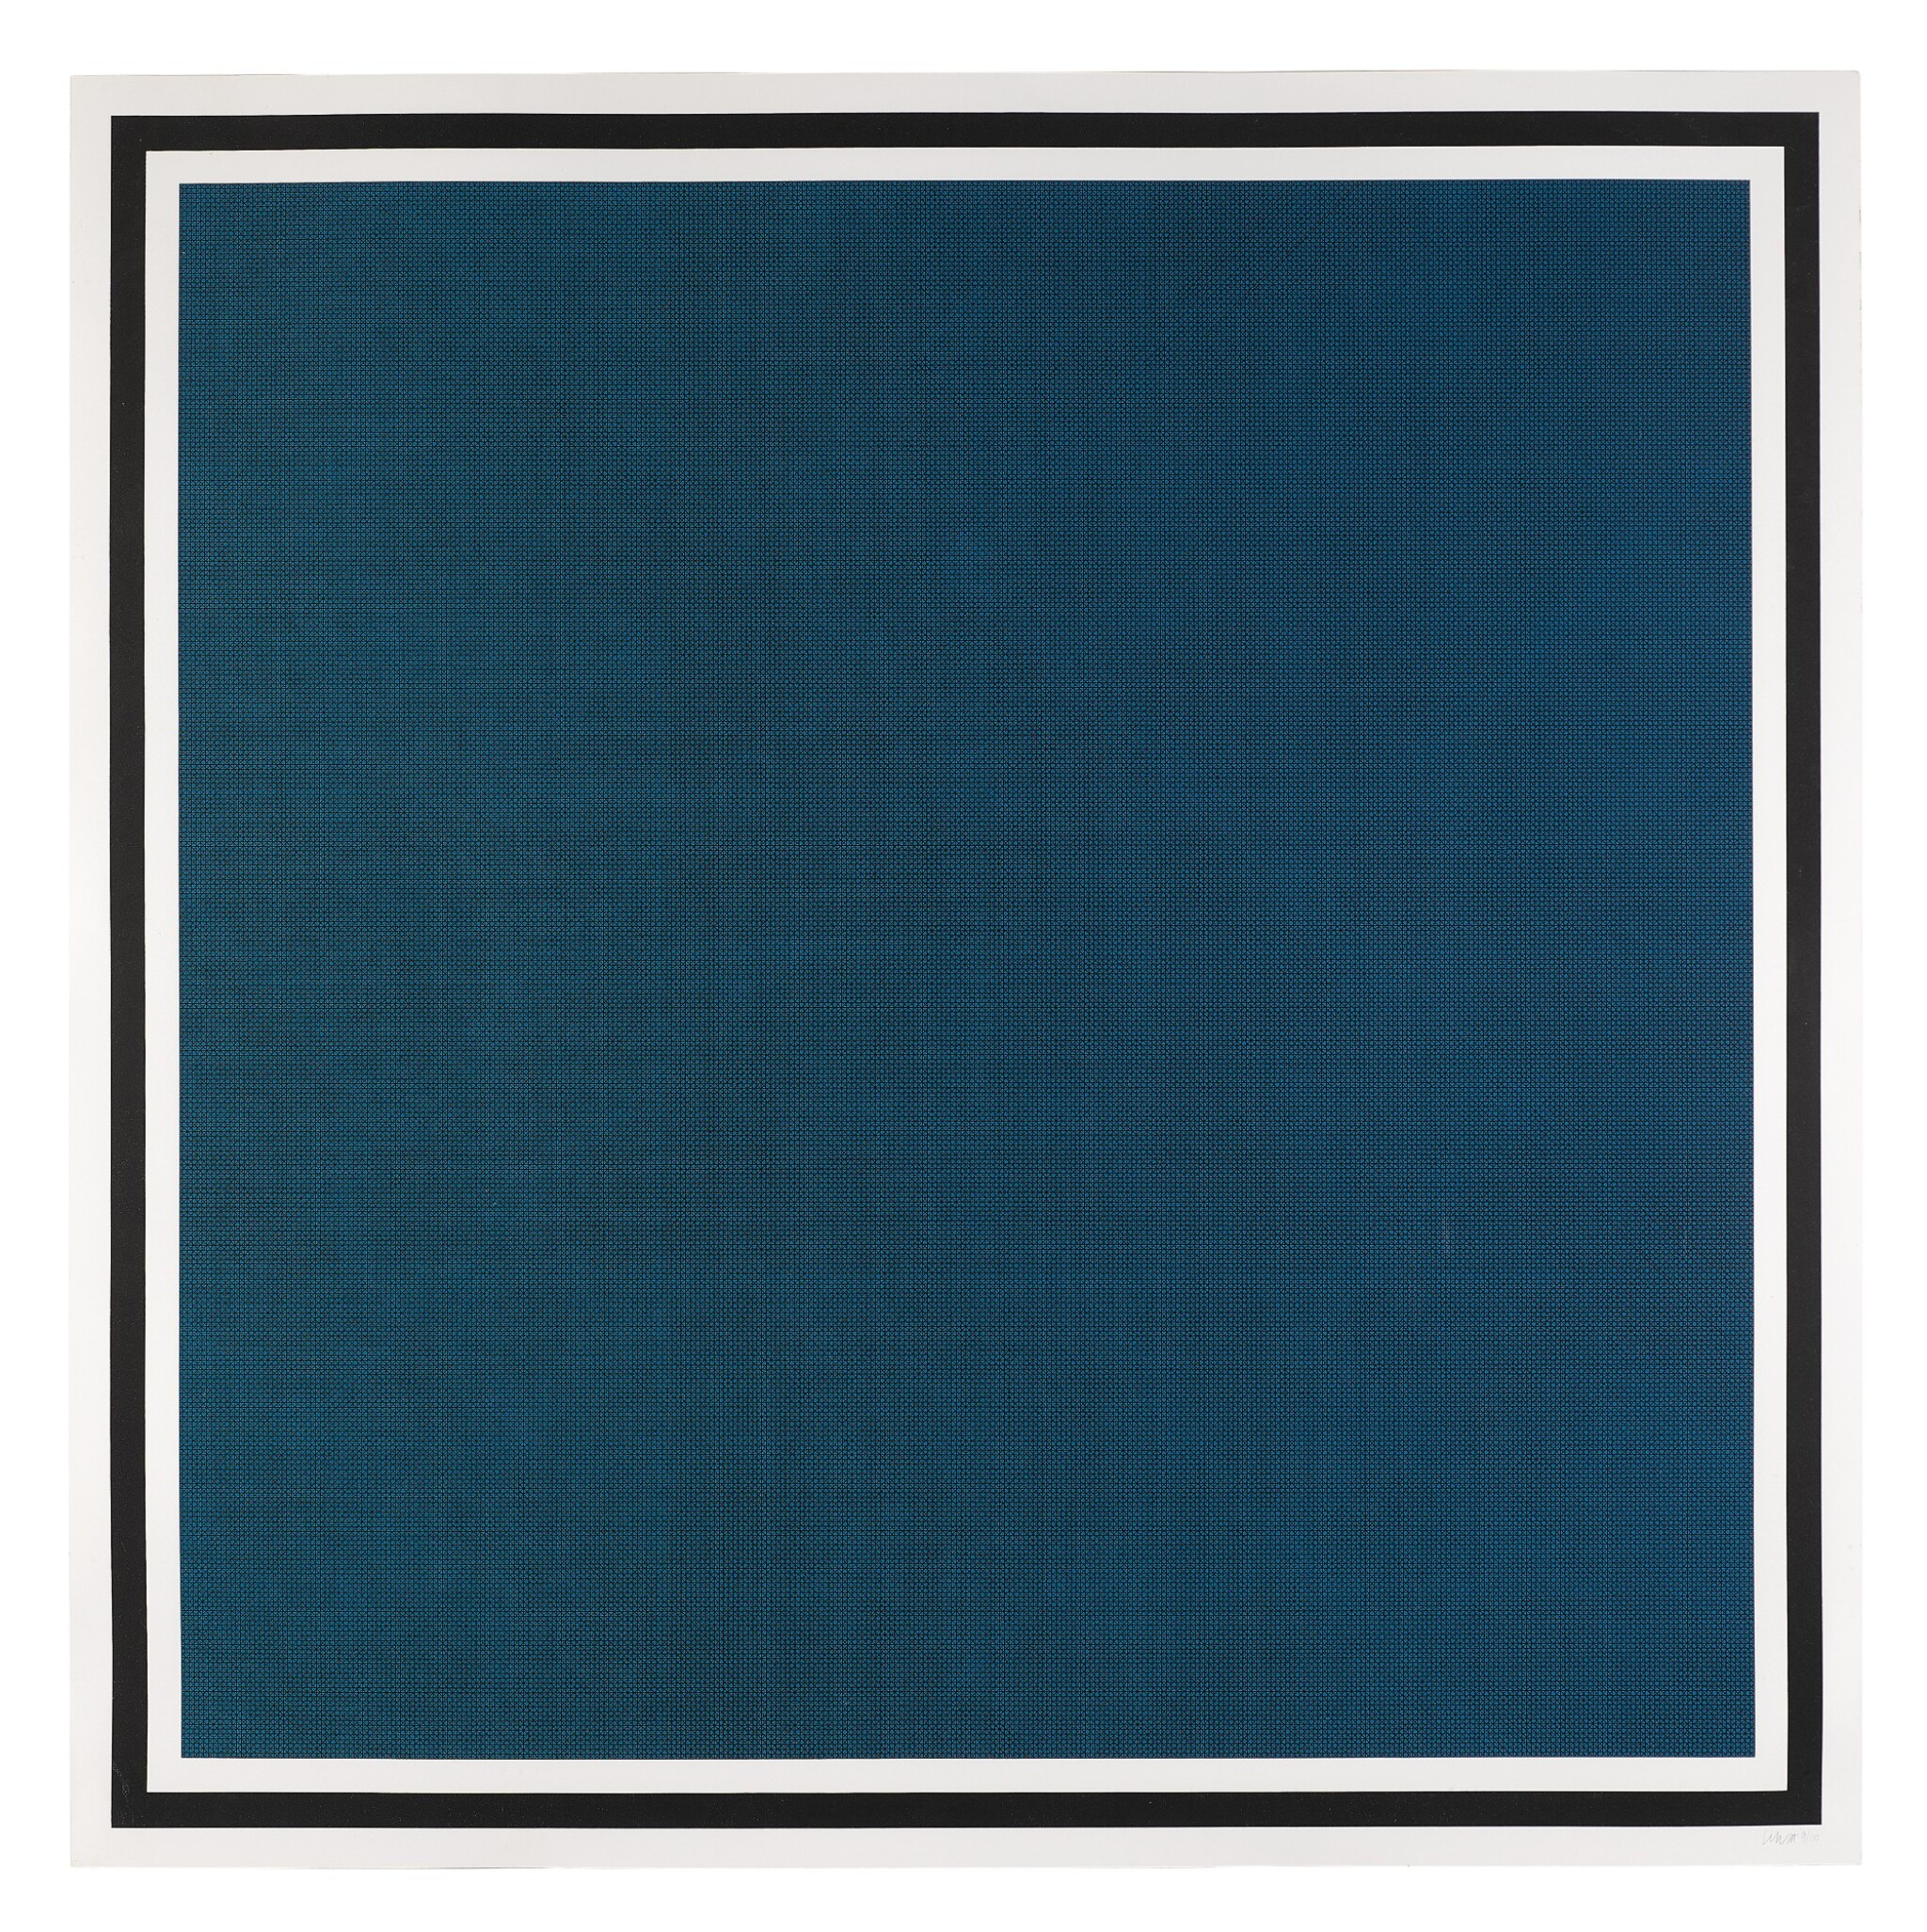 View 1 of Lot 98. Colors with Lines in Four Directions, Within a Black Border (Blue) (Krakow 1990.09).